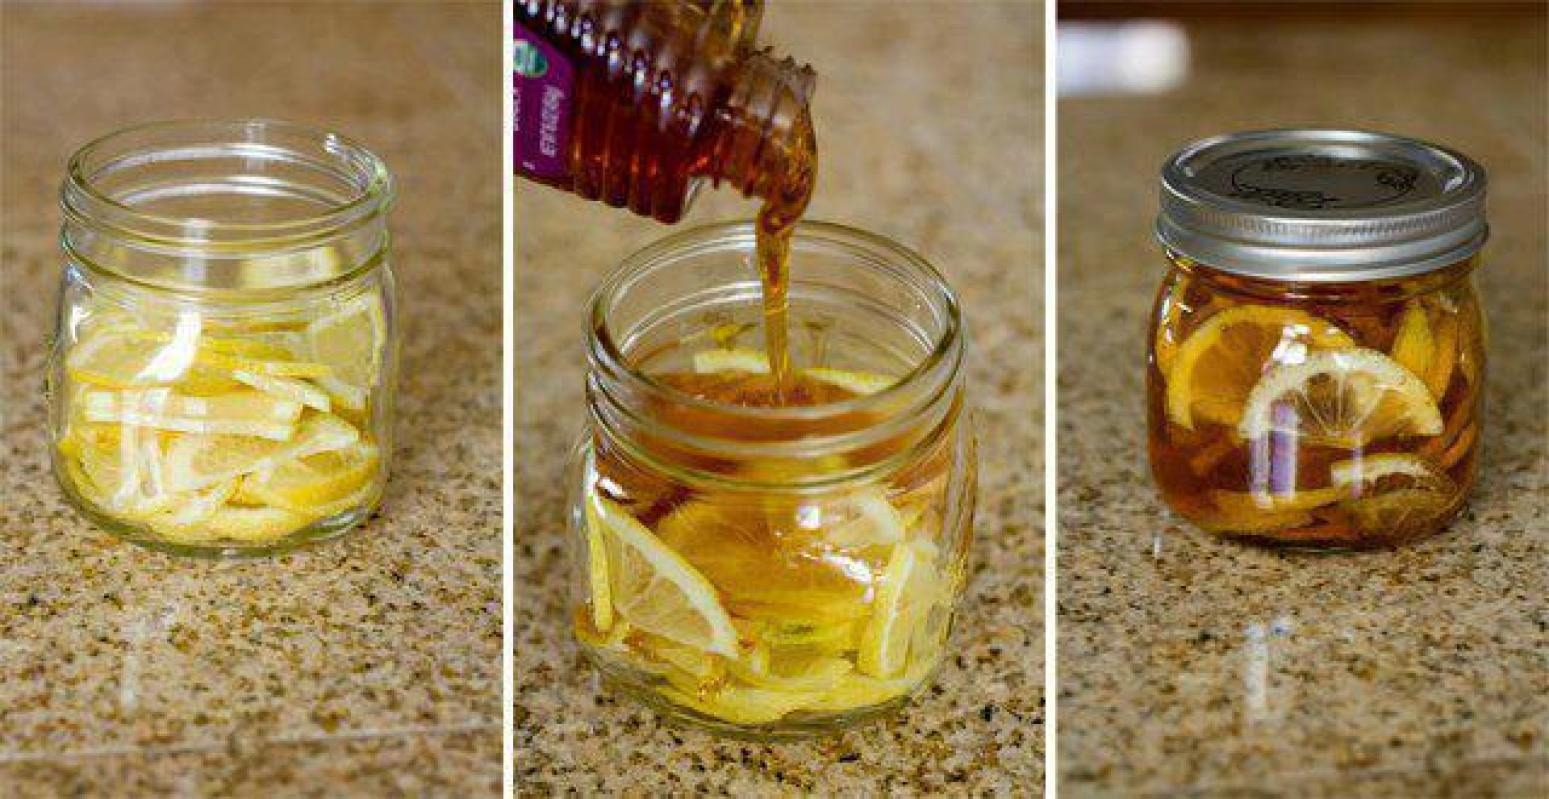 In a jar combine lemon slices, organic honey and sliced ginger. Close jar and put it in the fridge, it will form into a jelly.▶️▶️▶️